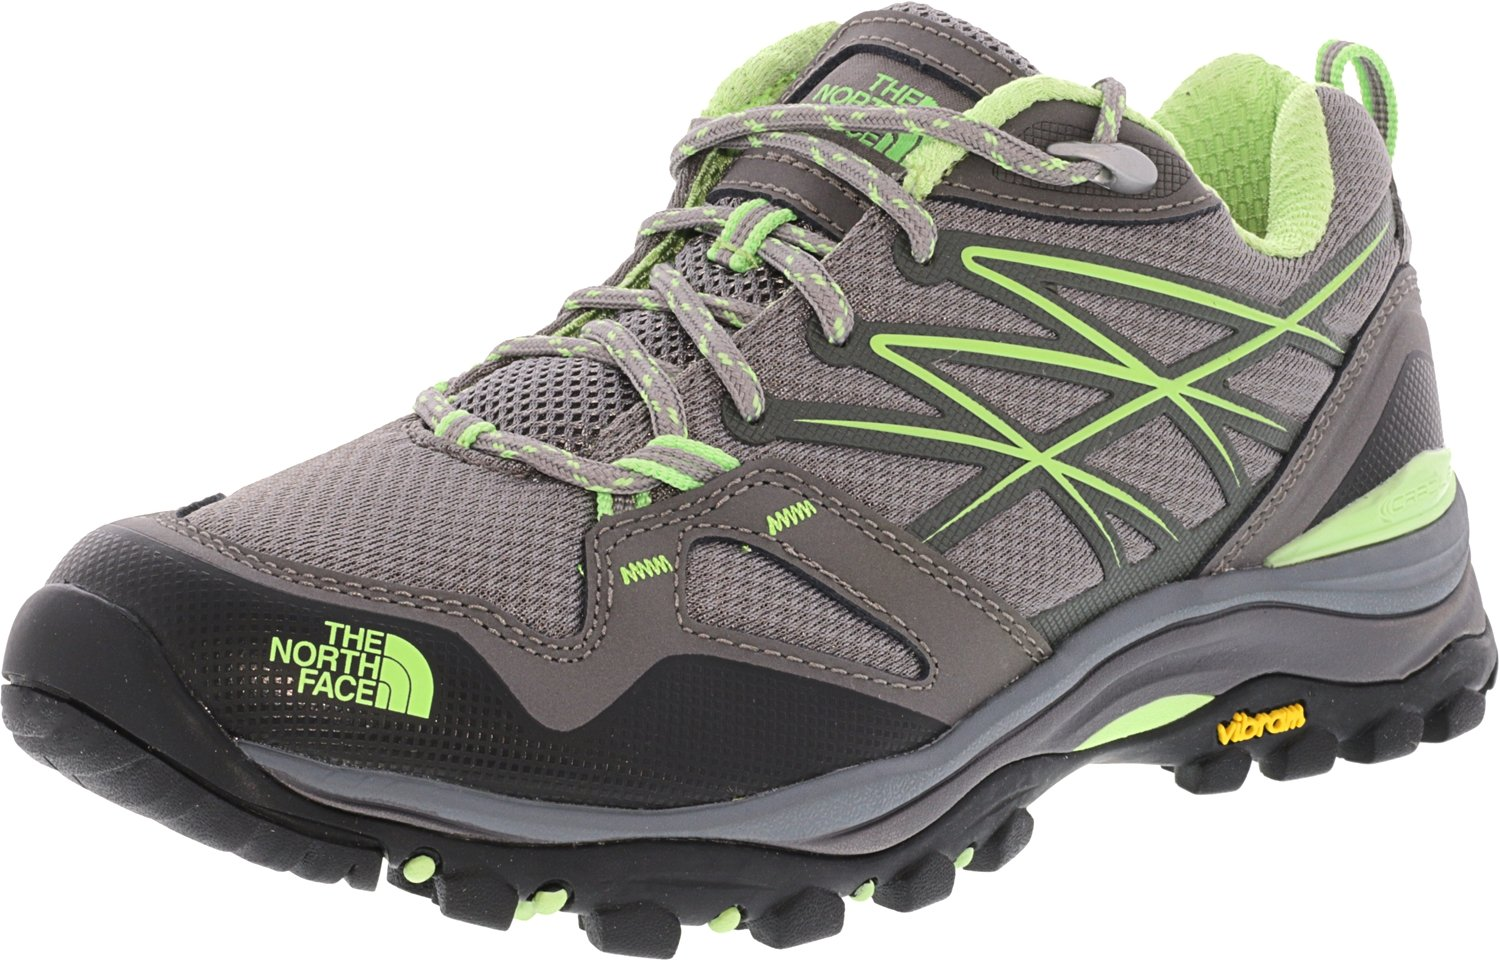 The North Face Women's Hedgehog Fastpack Hiking Shoe Grey/Paradise Green Size 8.5 M US